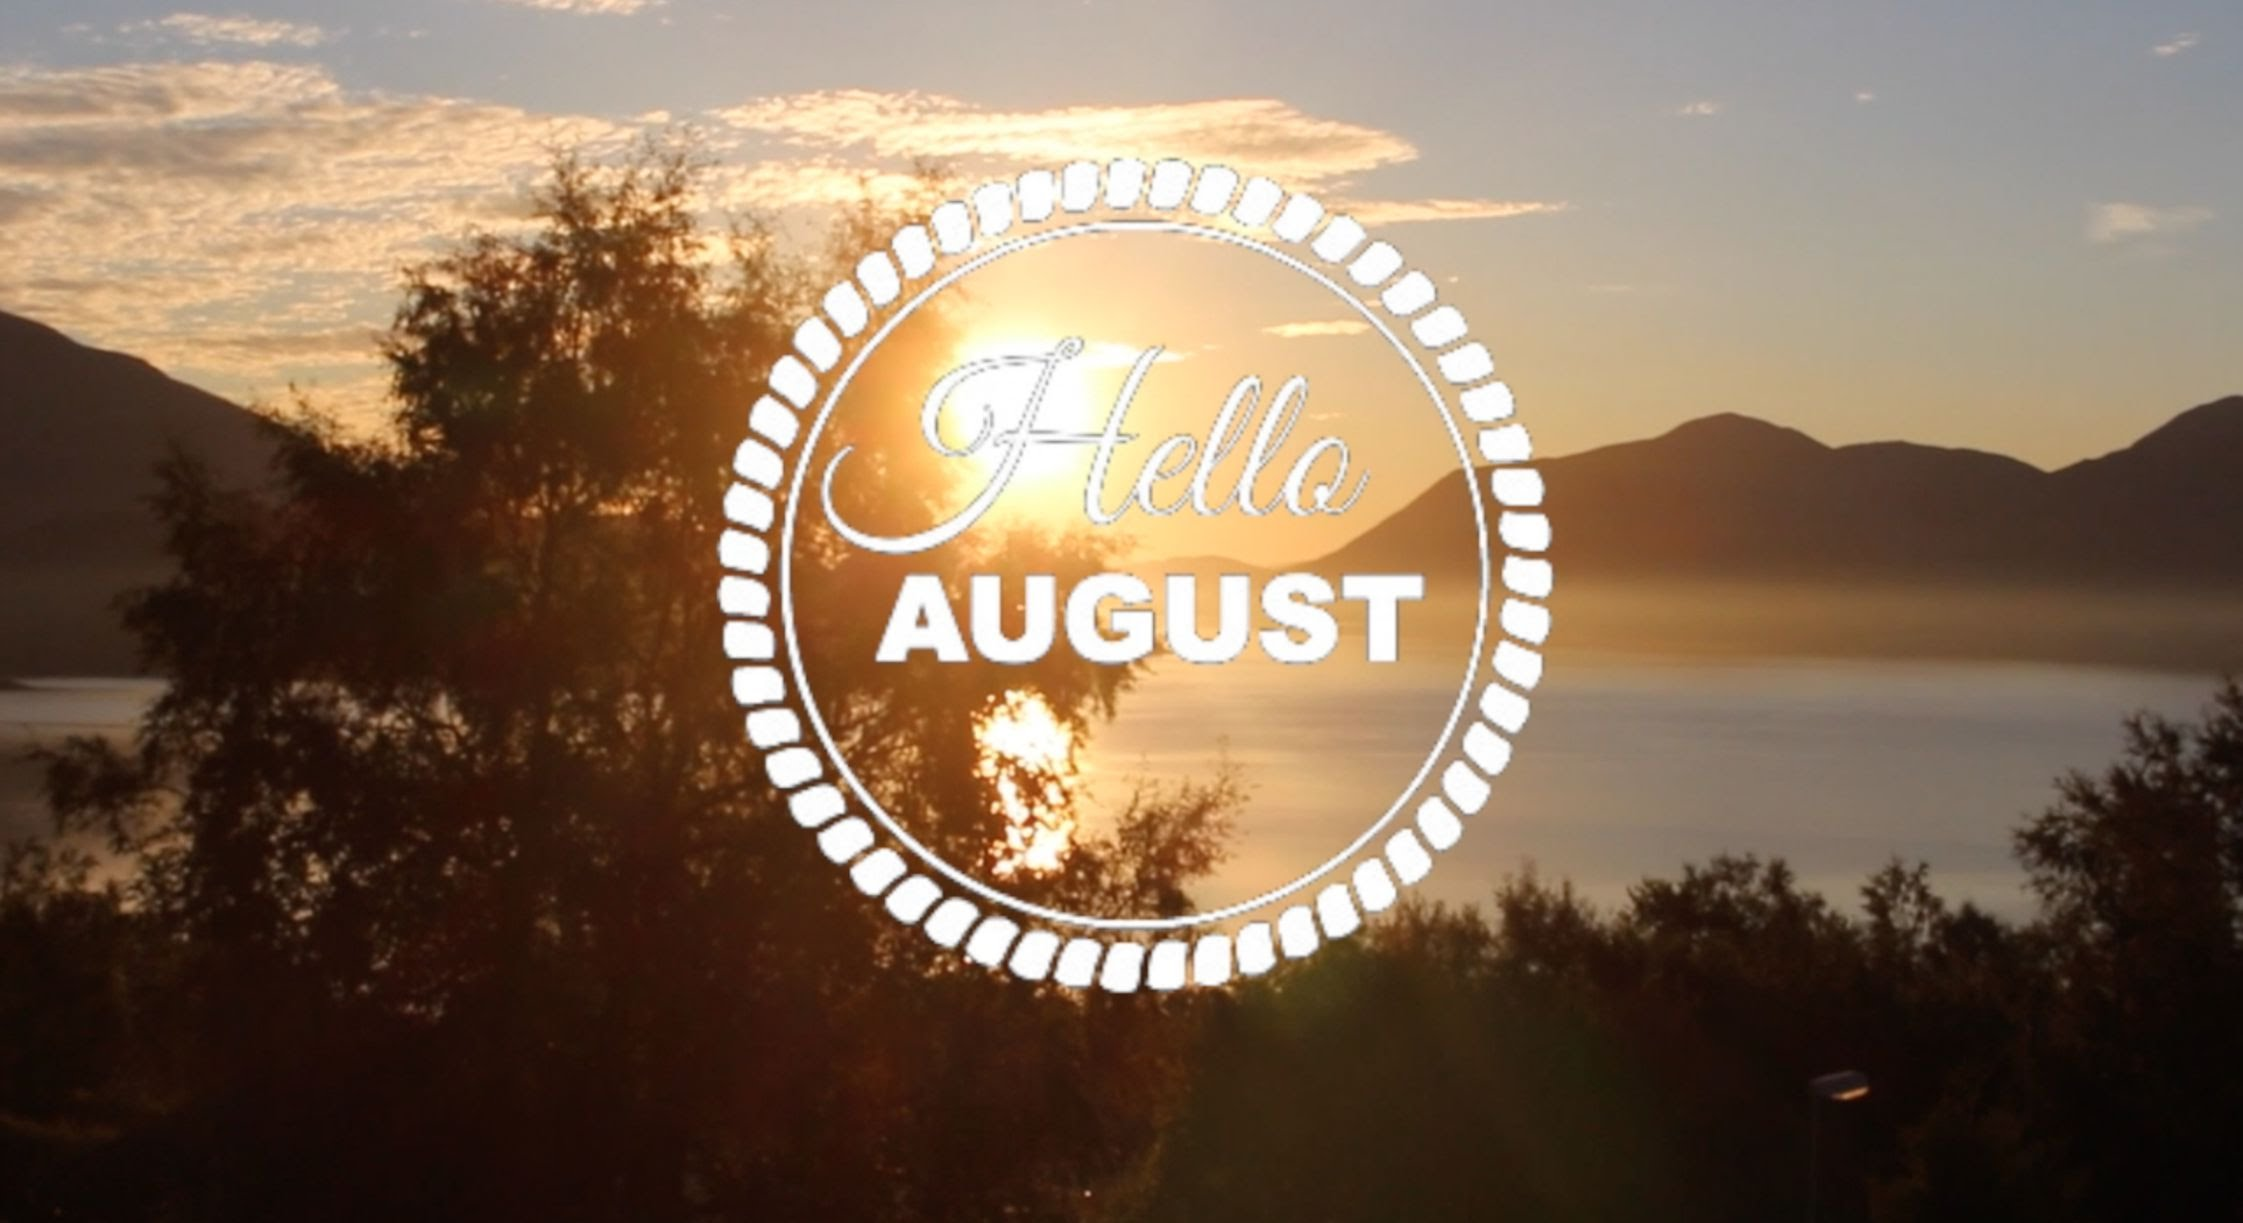 Hello August Summer Images